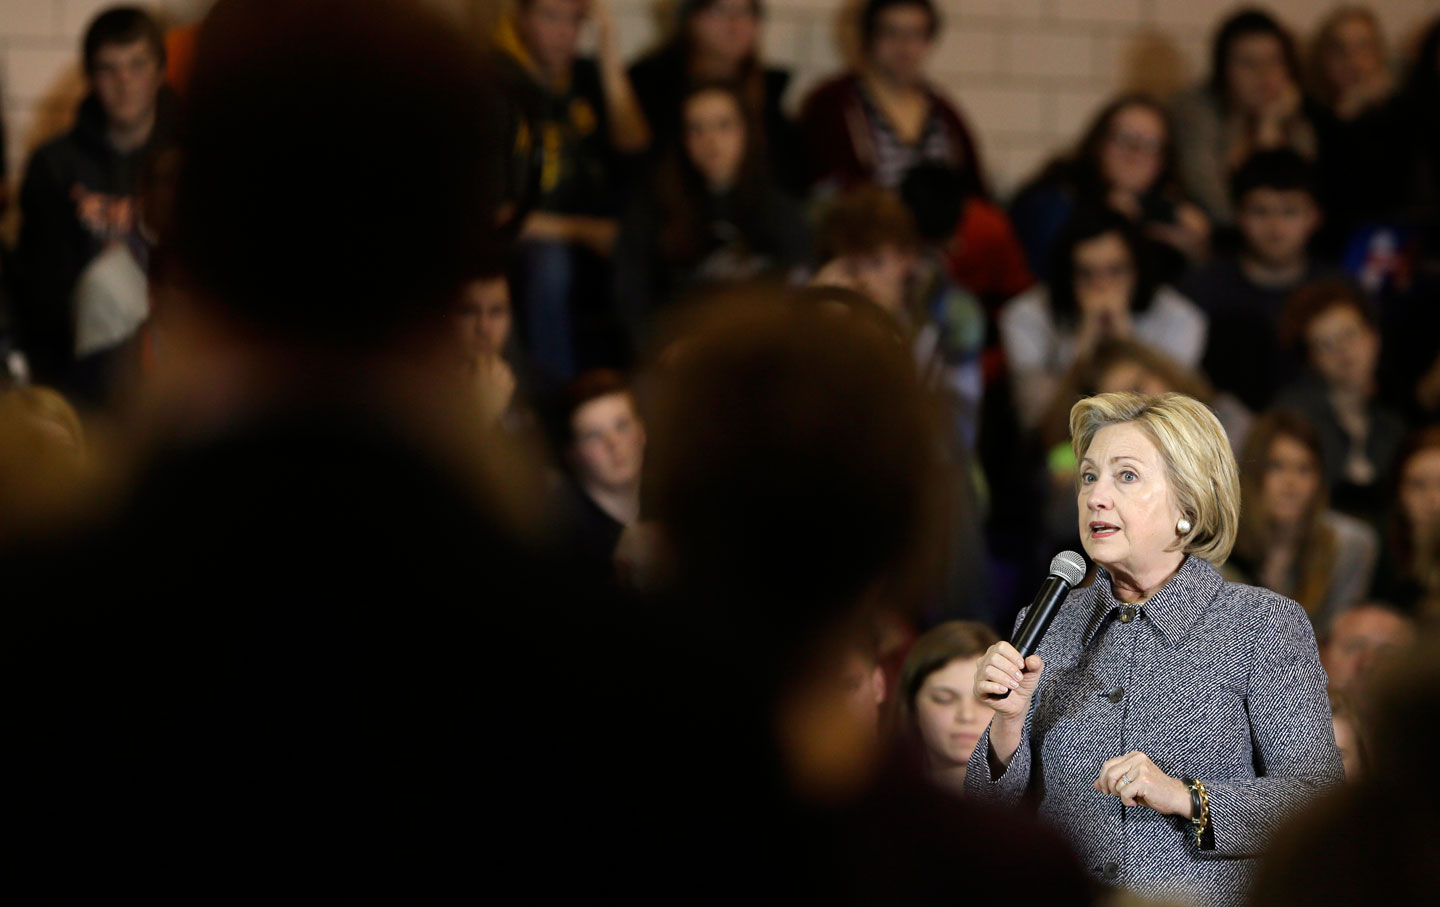 hillary_clinton_in_crowd_ap_img